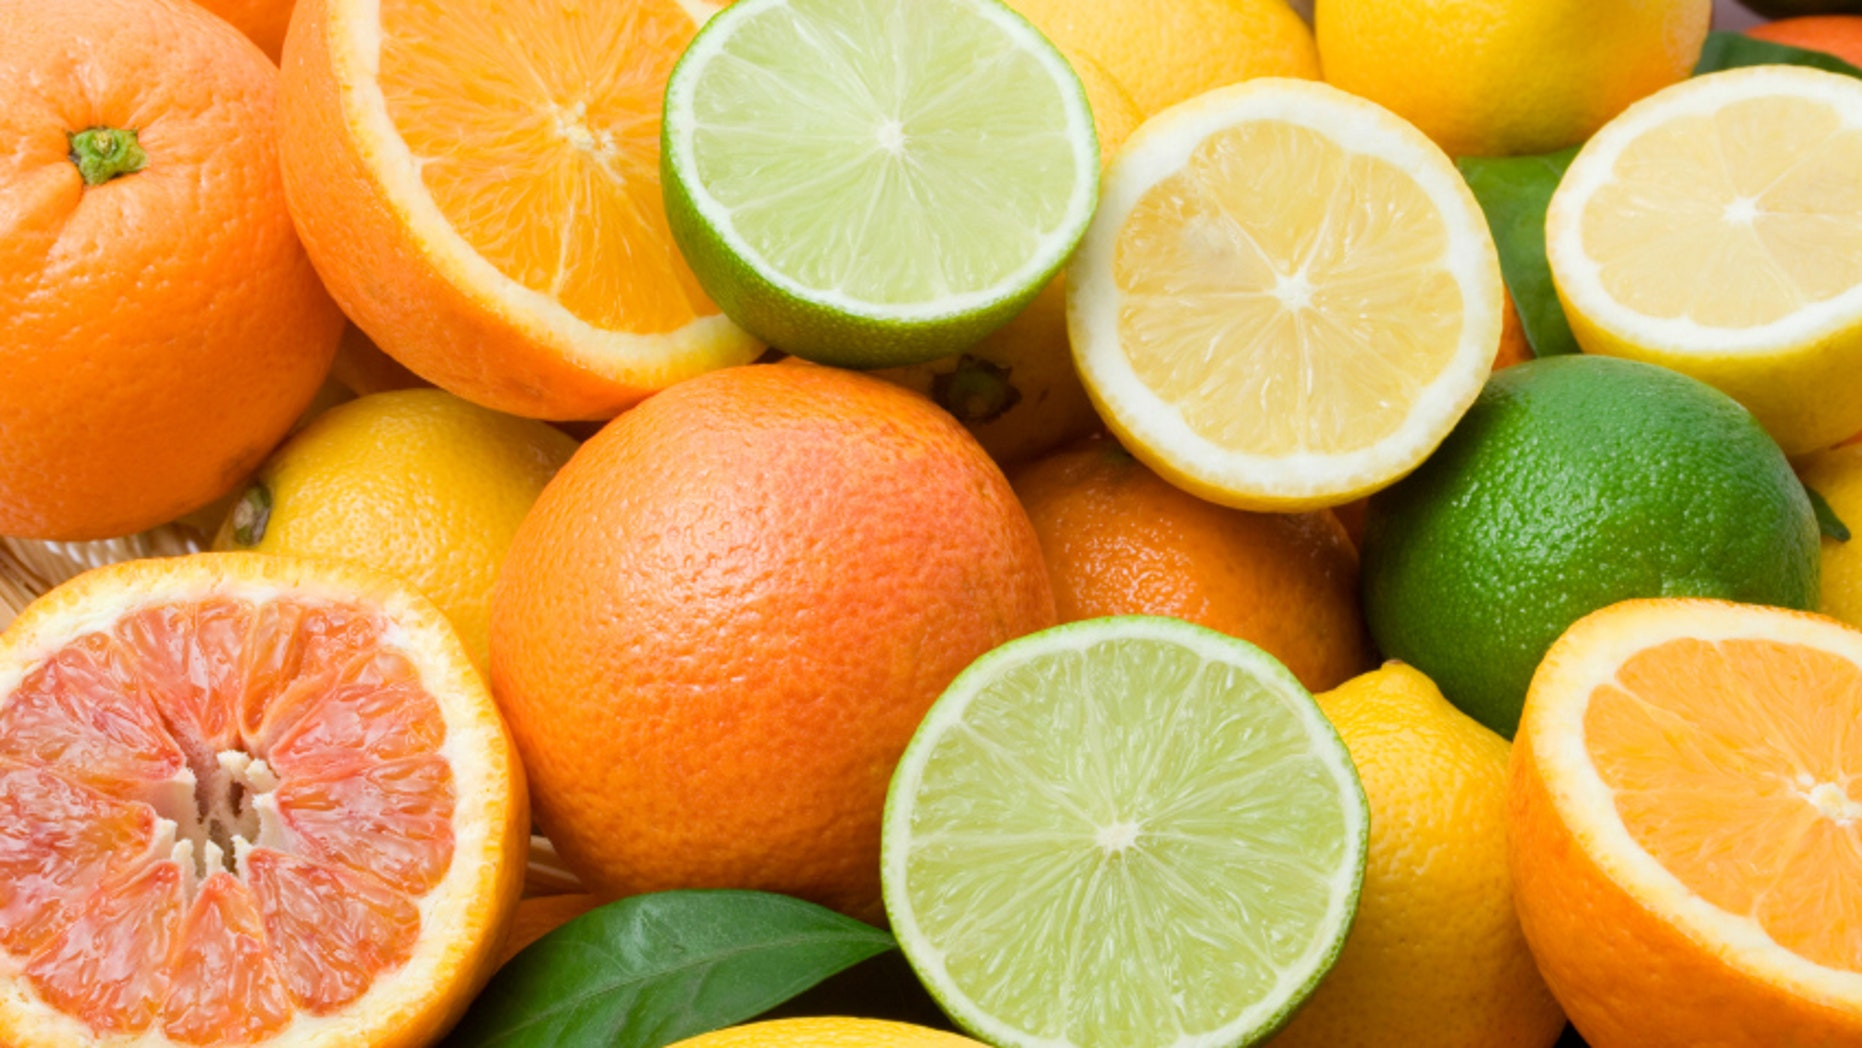 Lemon, lime, tangerine, orange  and grapefruit background